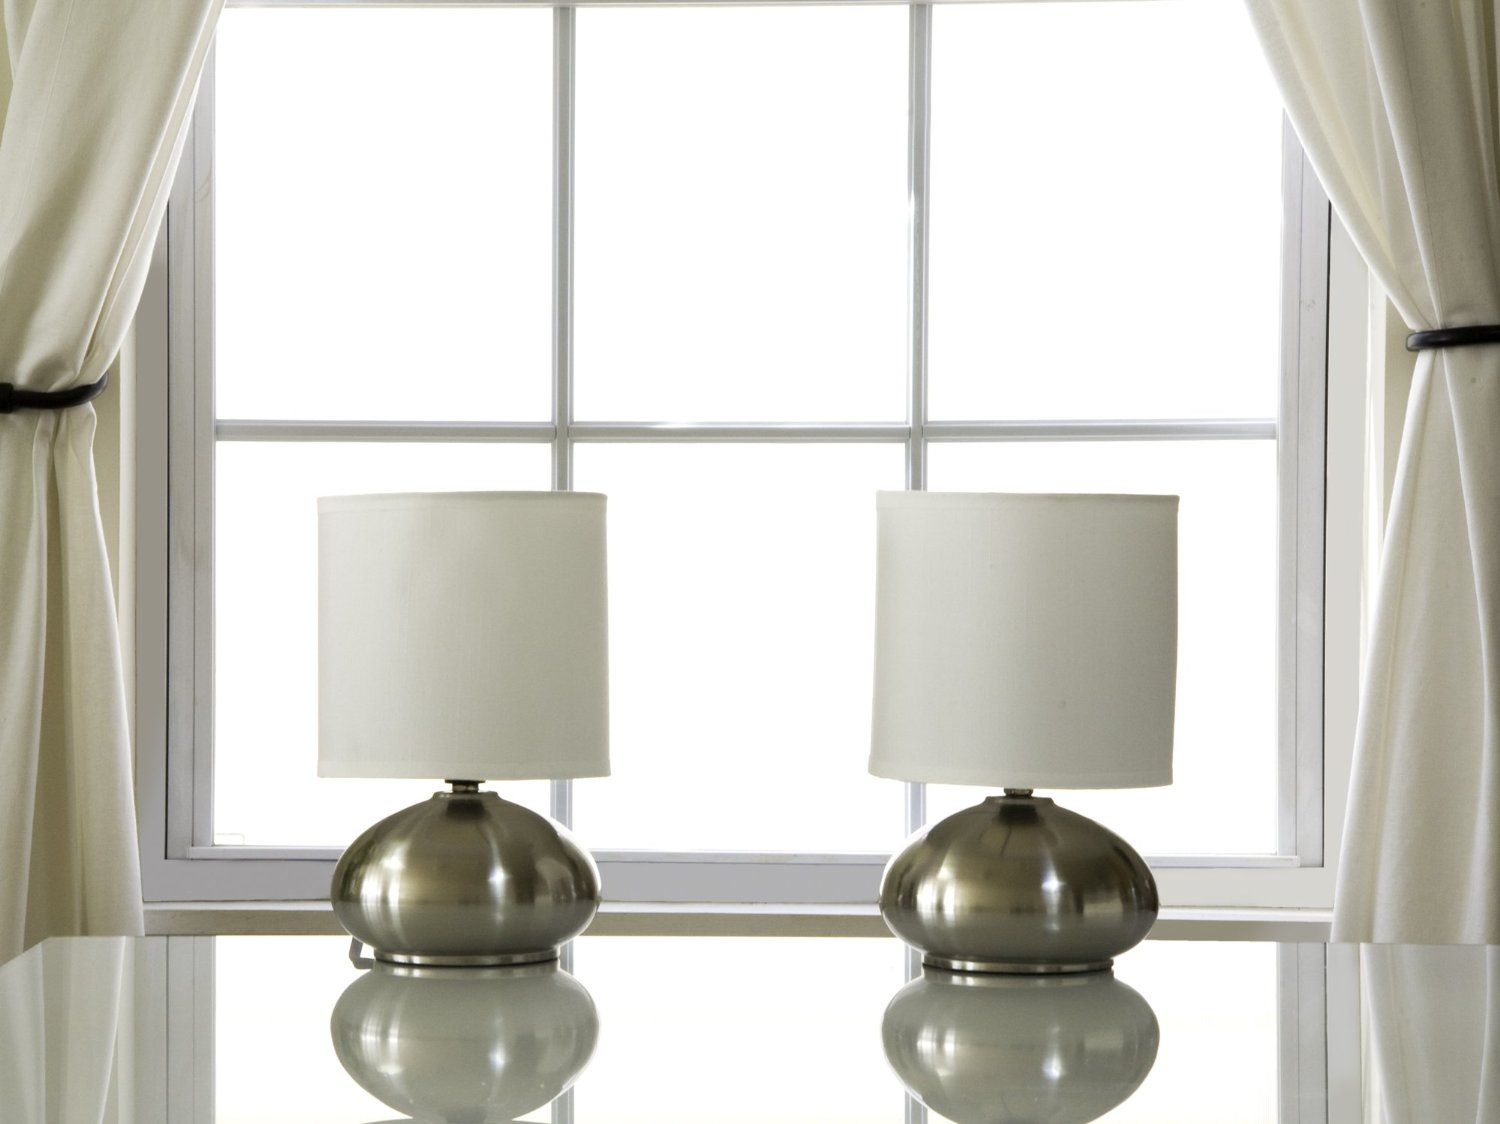 Light Accents Touch Table Lamp Set Metal Lamps With Fabric Shades And 3 Stage Dimmer Switch Brushed Nickel